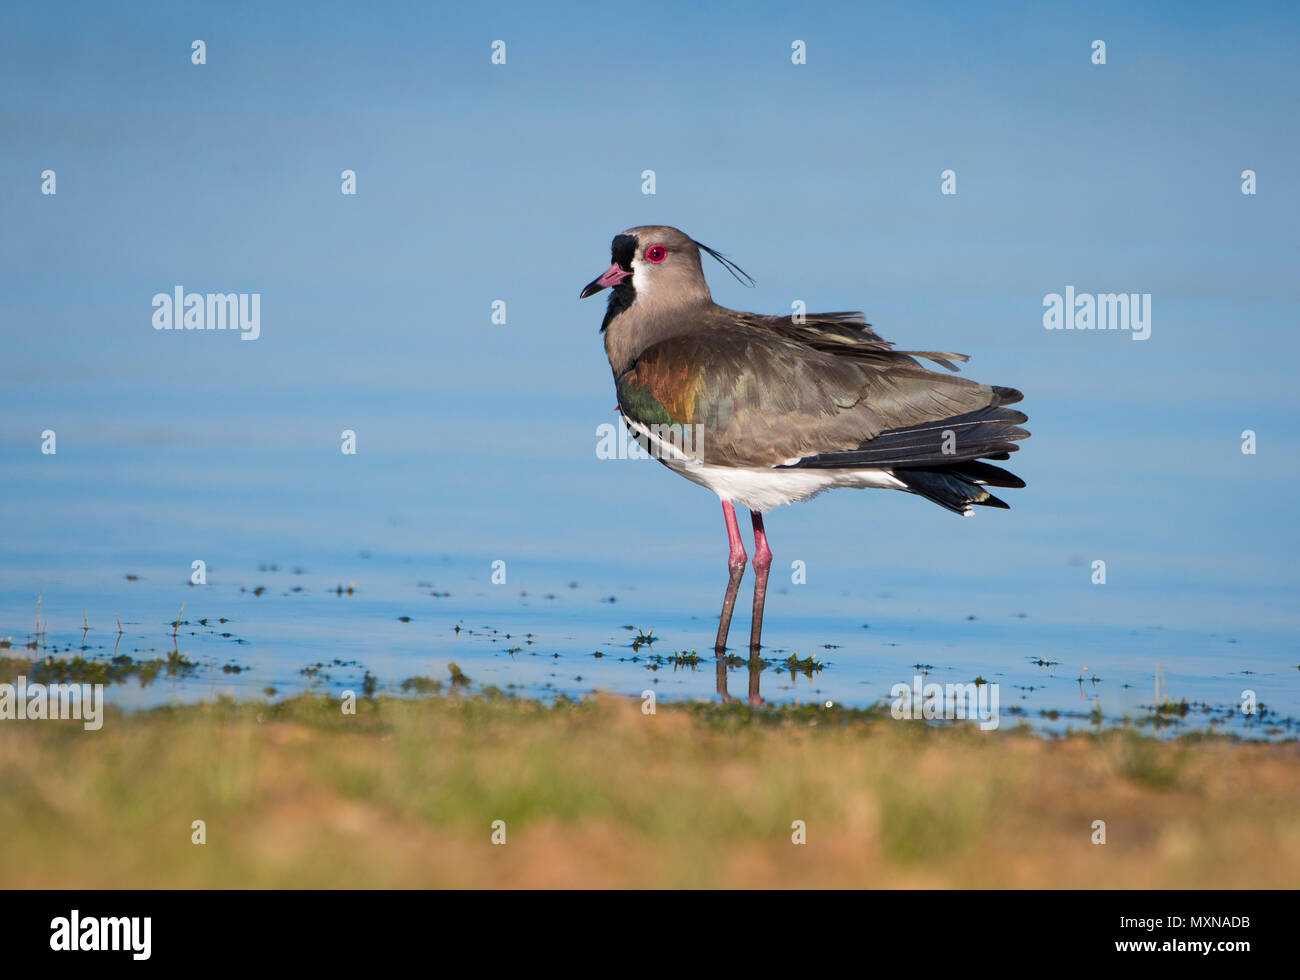 A Southern Lapwing (Vanellus chilensis) from the Pantanal of Brazil - Stock Image